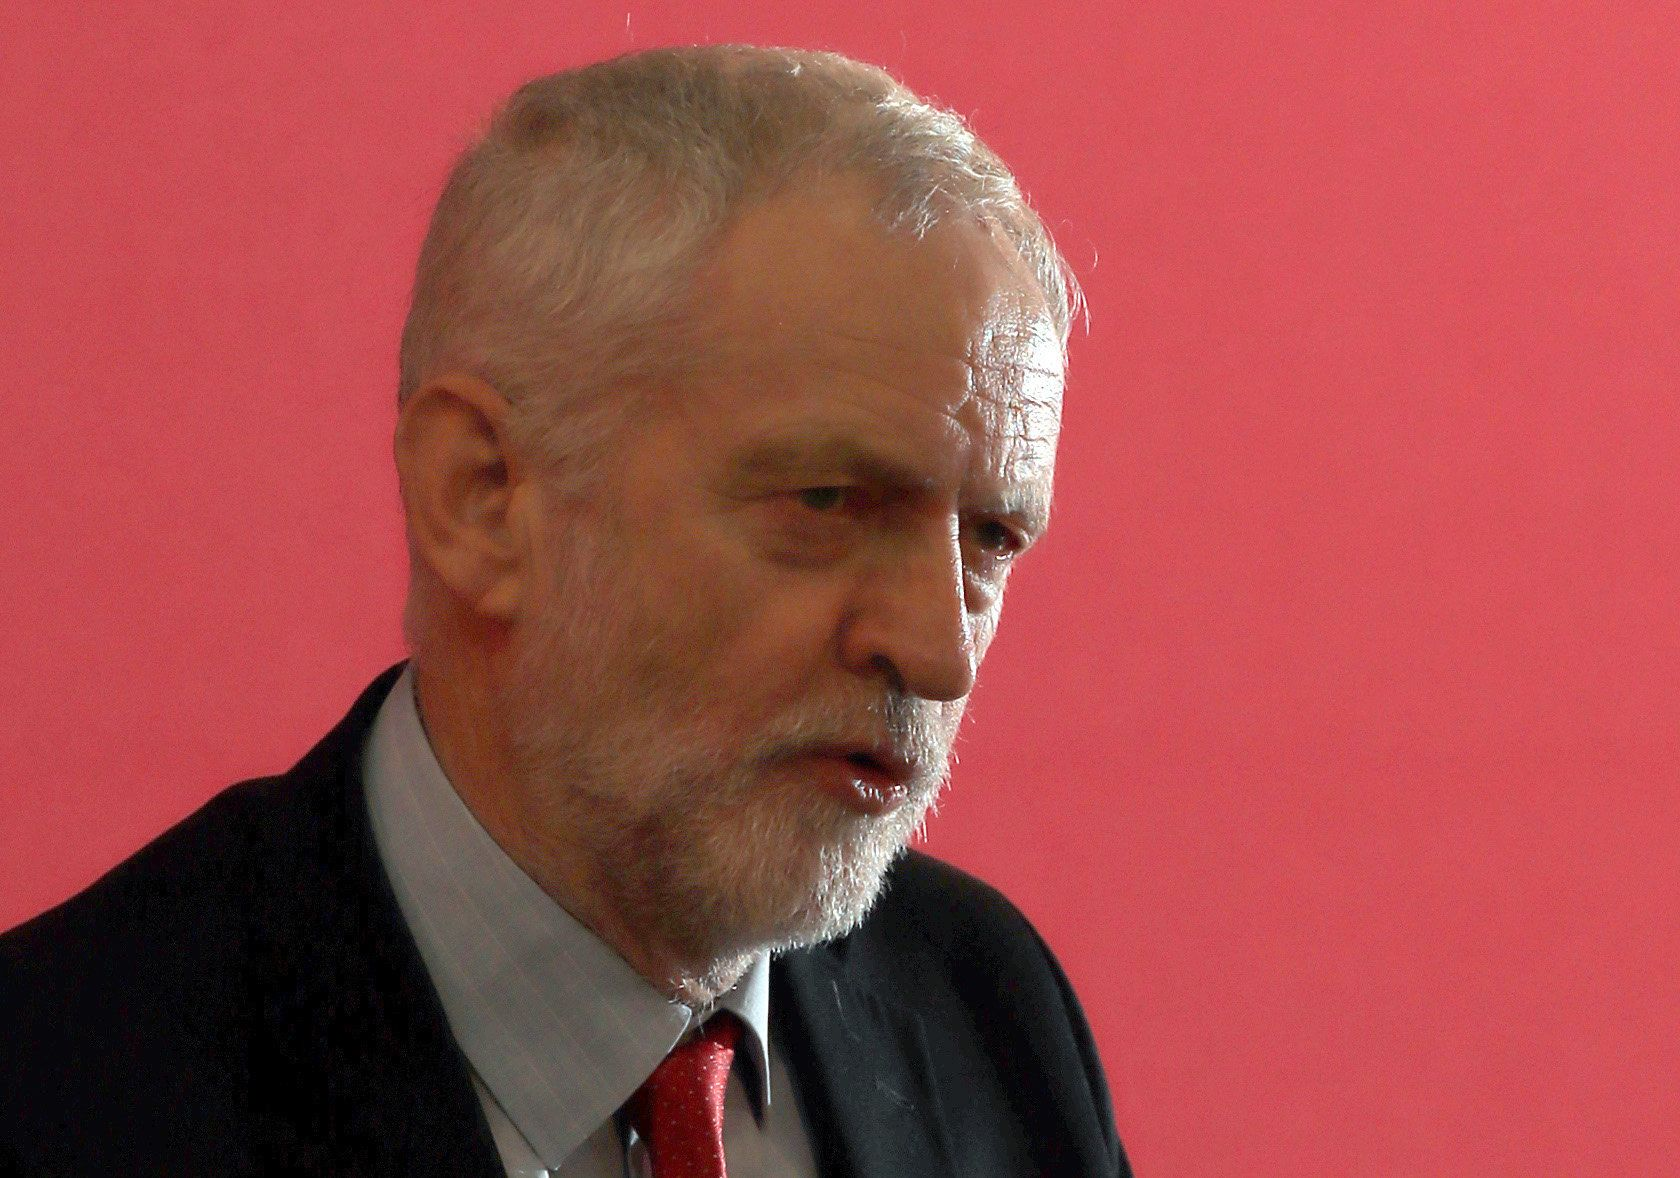 Jewdas: Why has Jeremy Corbyn been criticised for meeting the Jewish group?